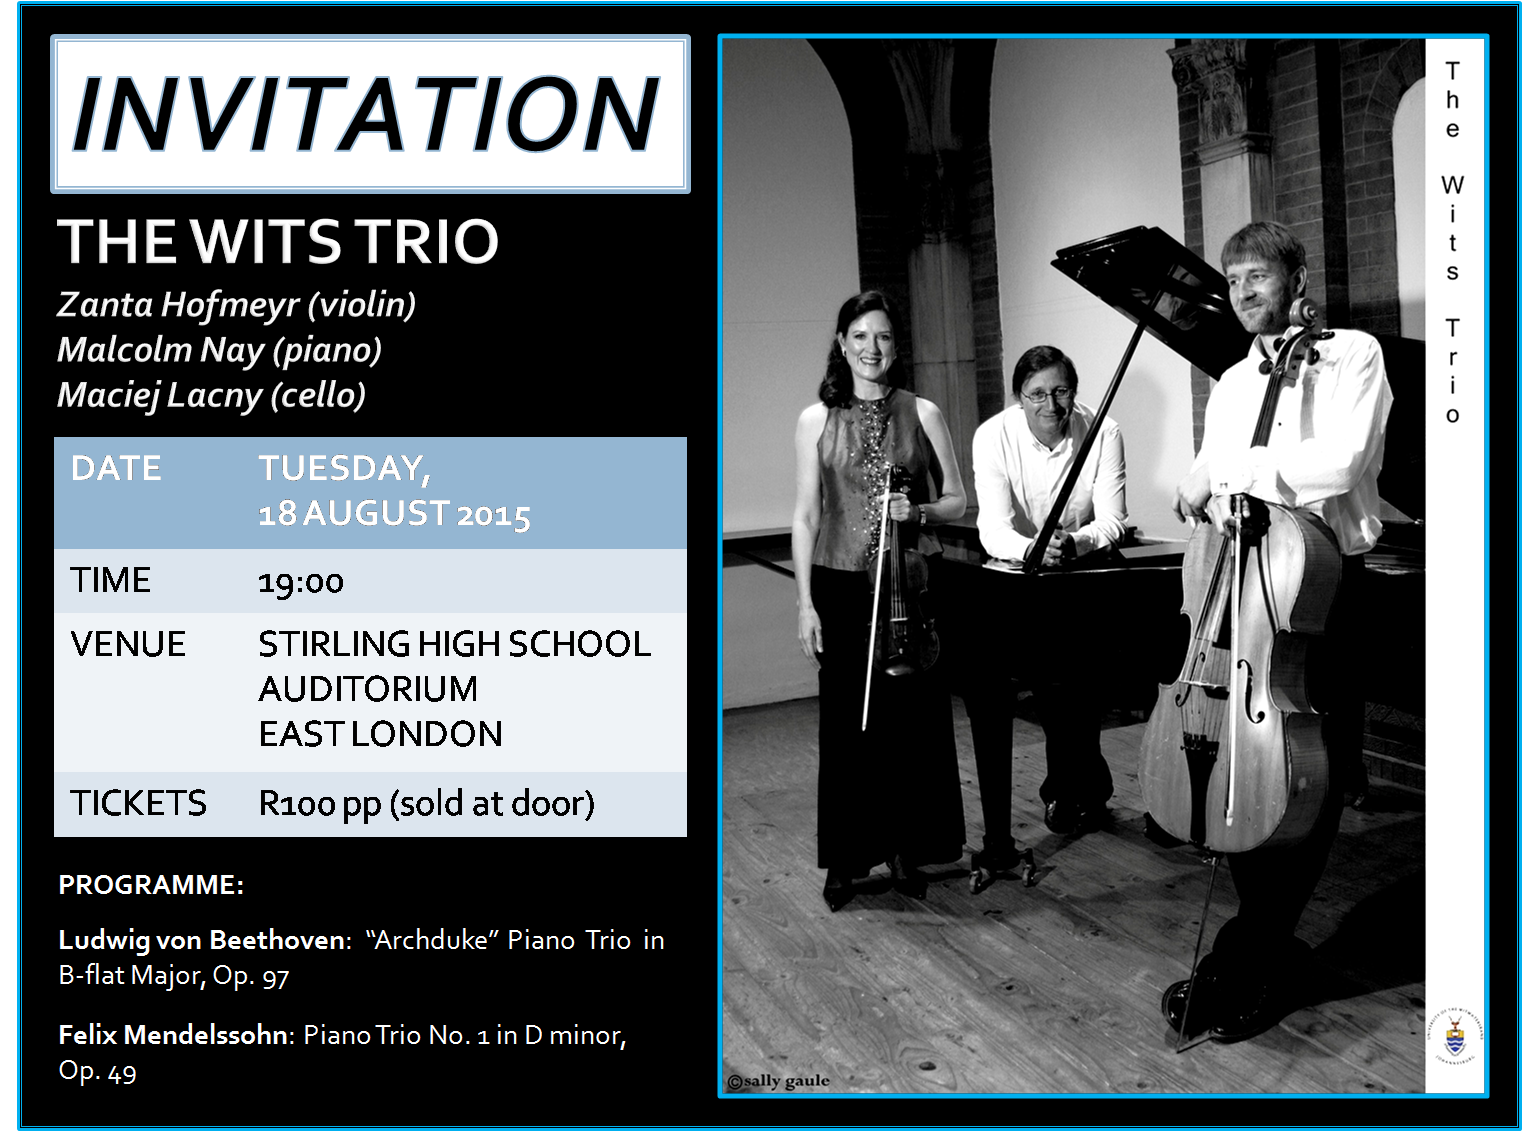 WITS TRIO INVITE